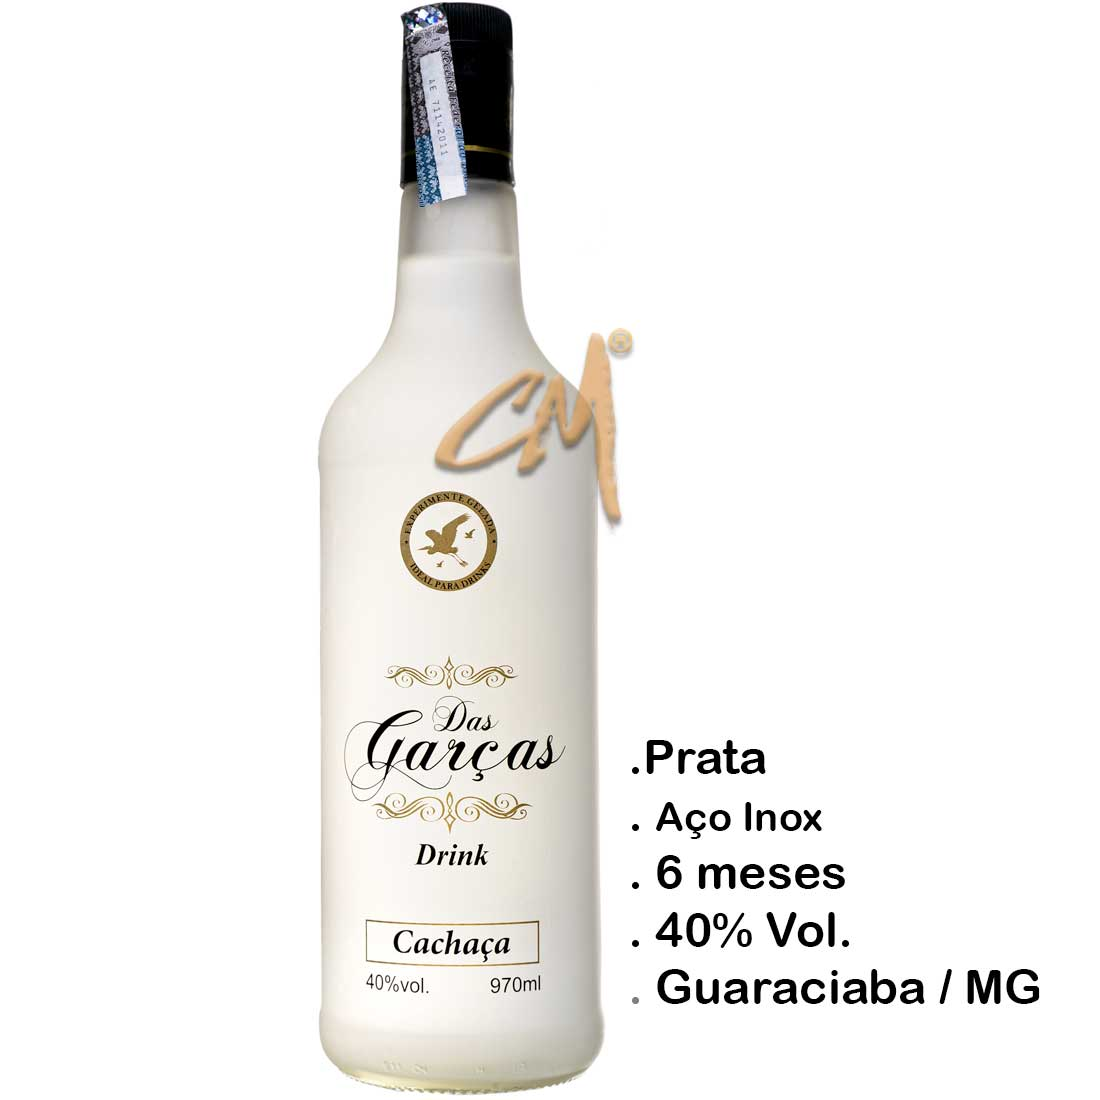 Cachaça Das Garças Drink 970 ml (Guaraciaba - MG)